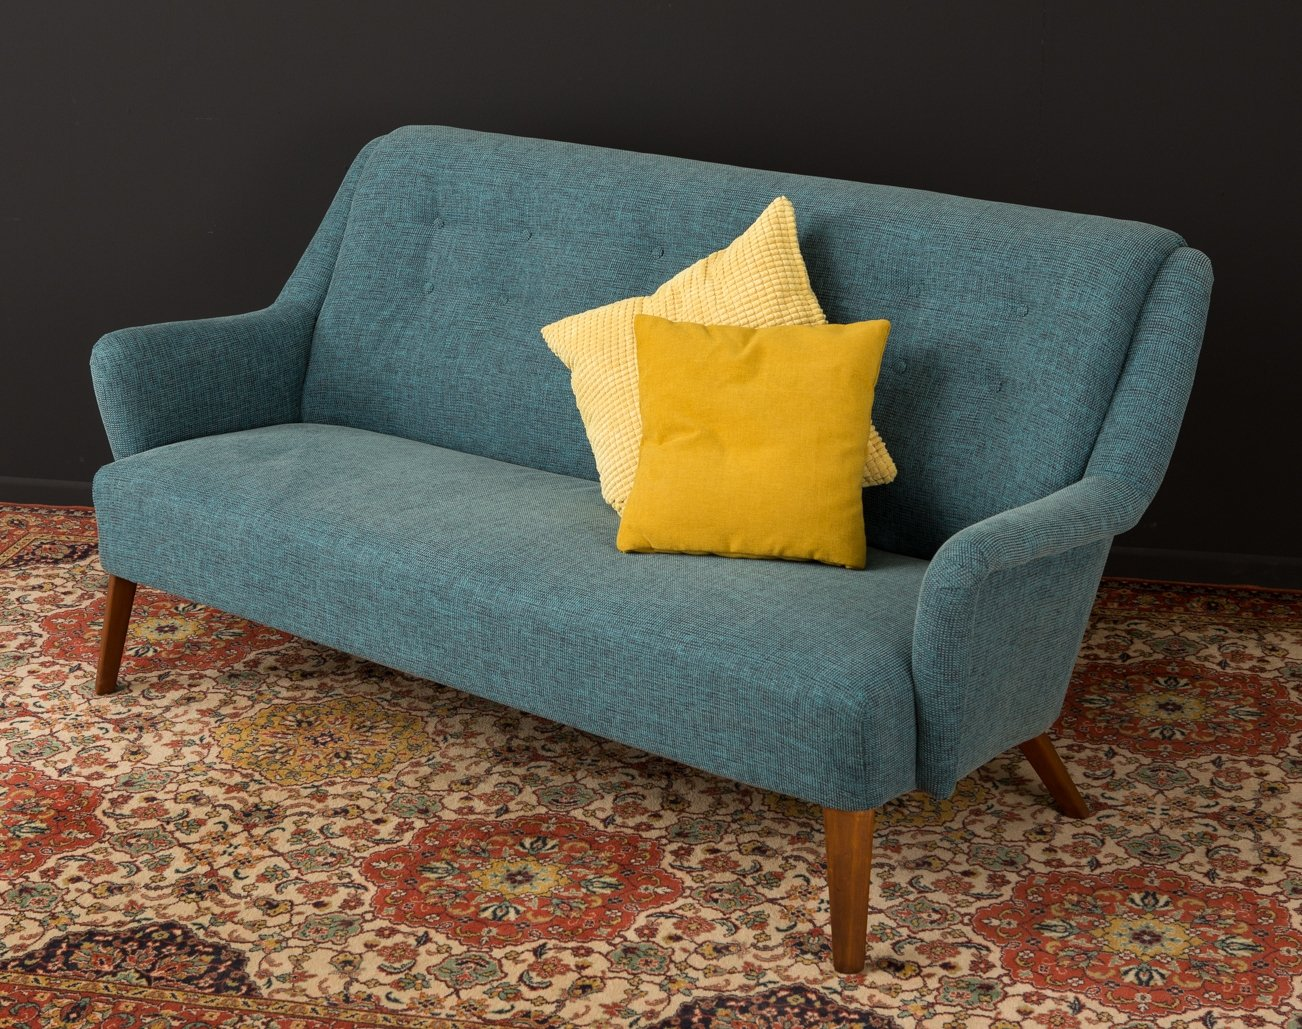 Petrol Colored Sofa From The 1950s 83815